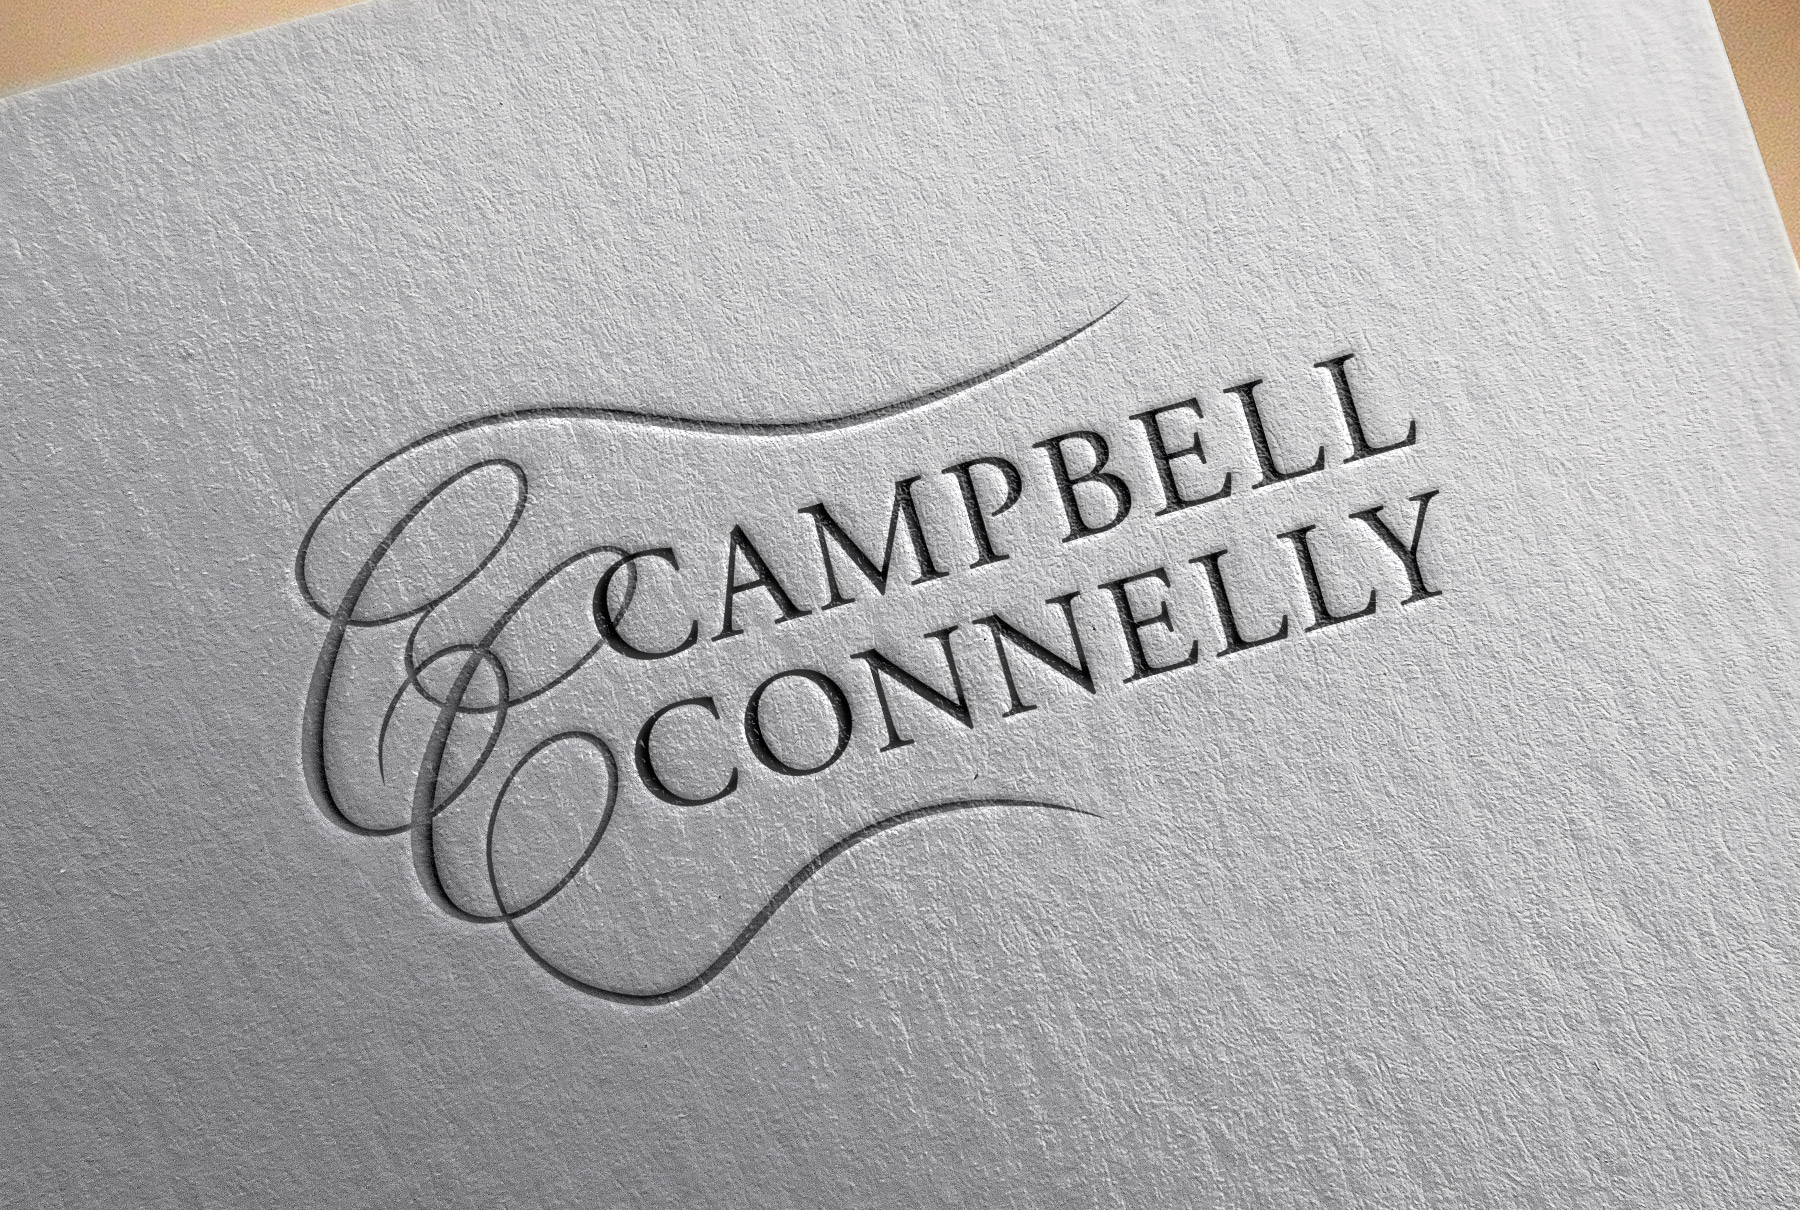 Campbell Connelly Logo